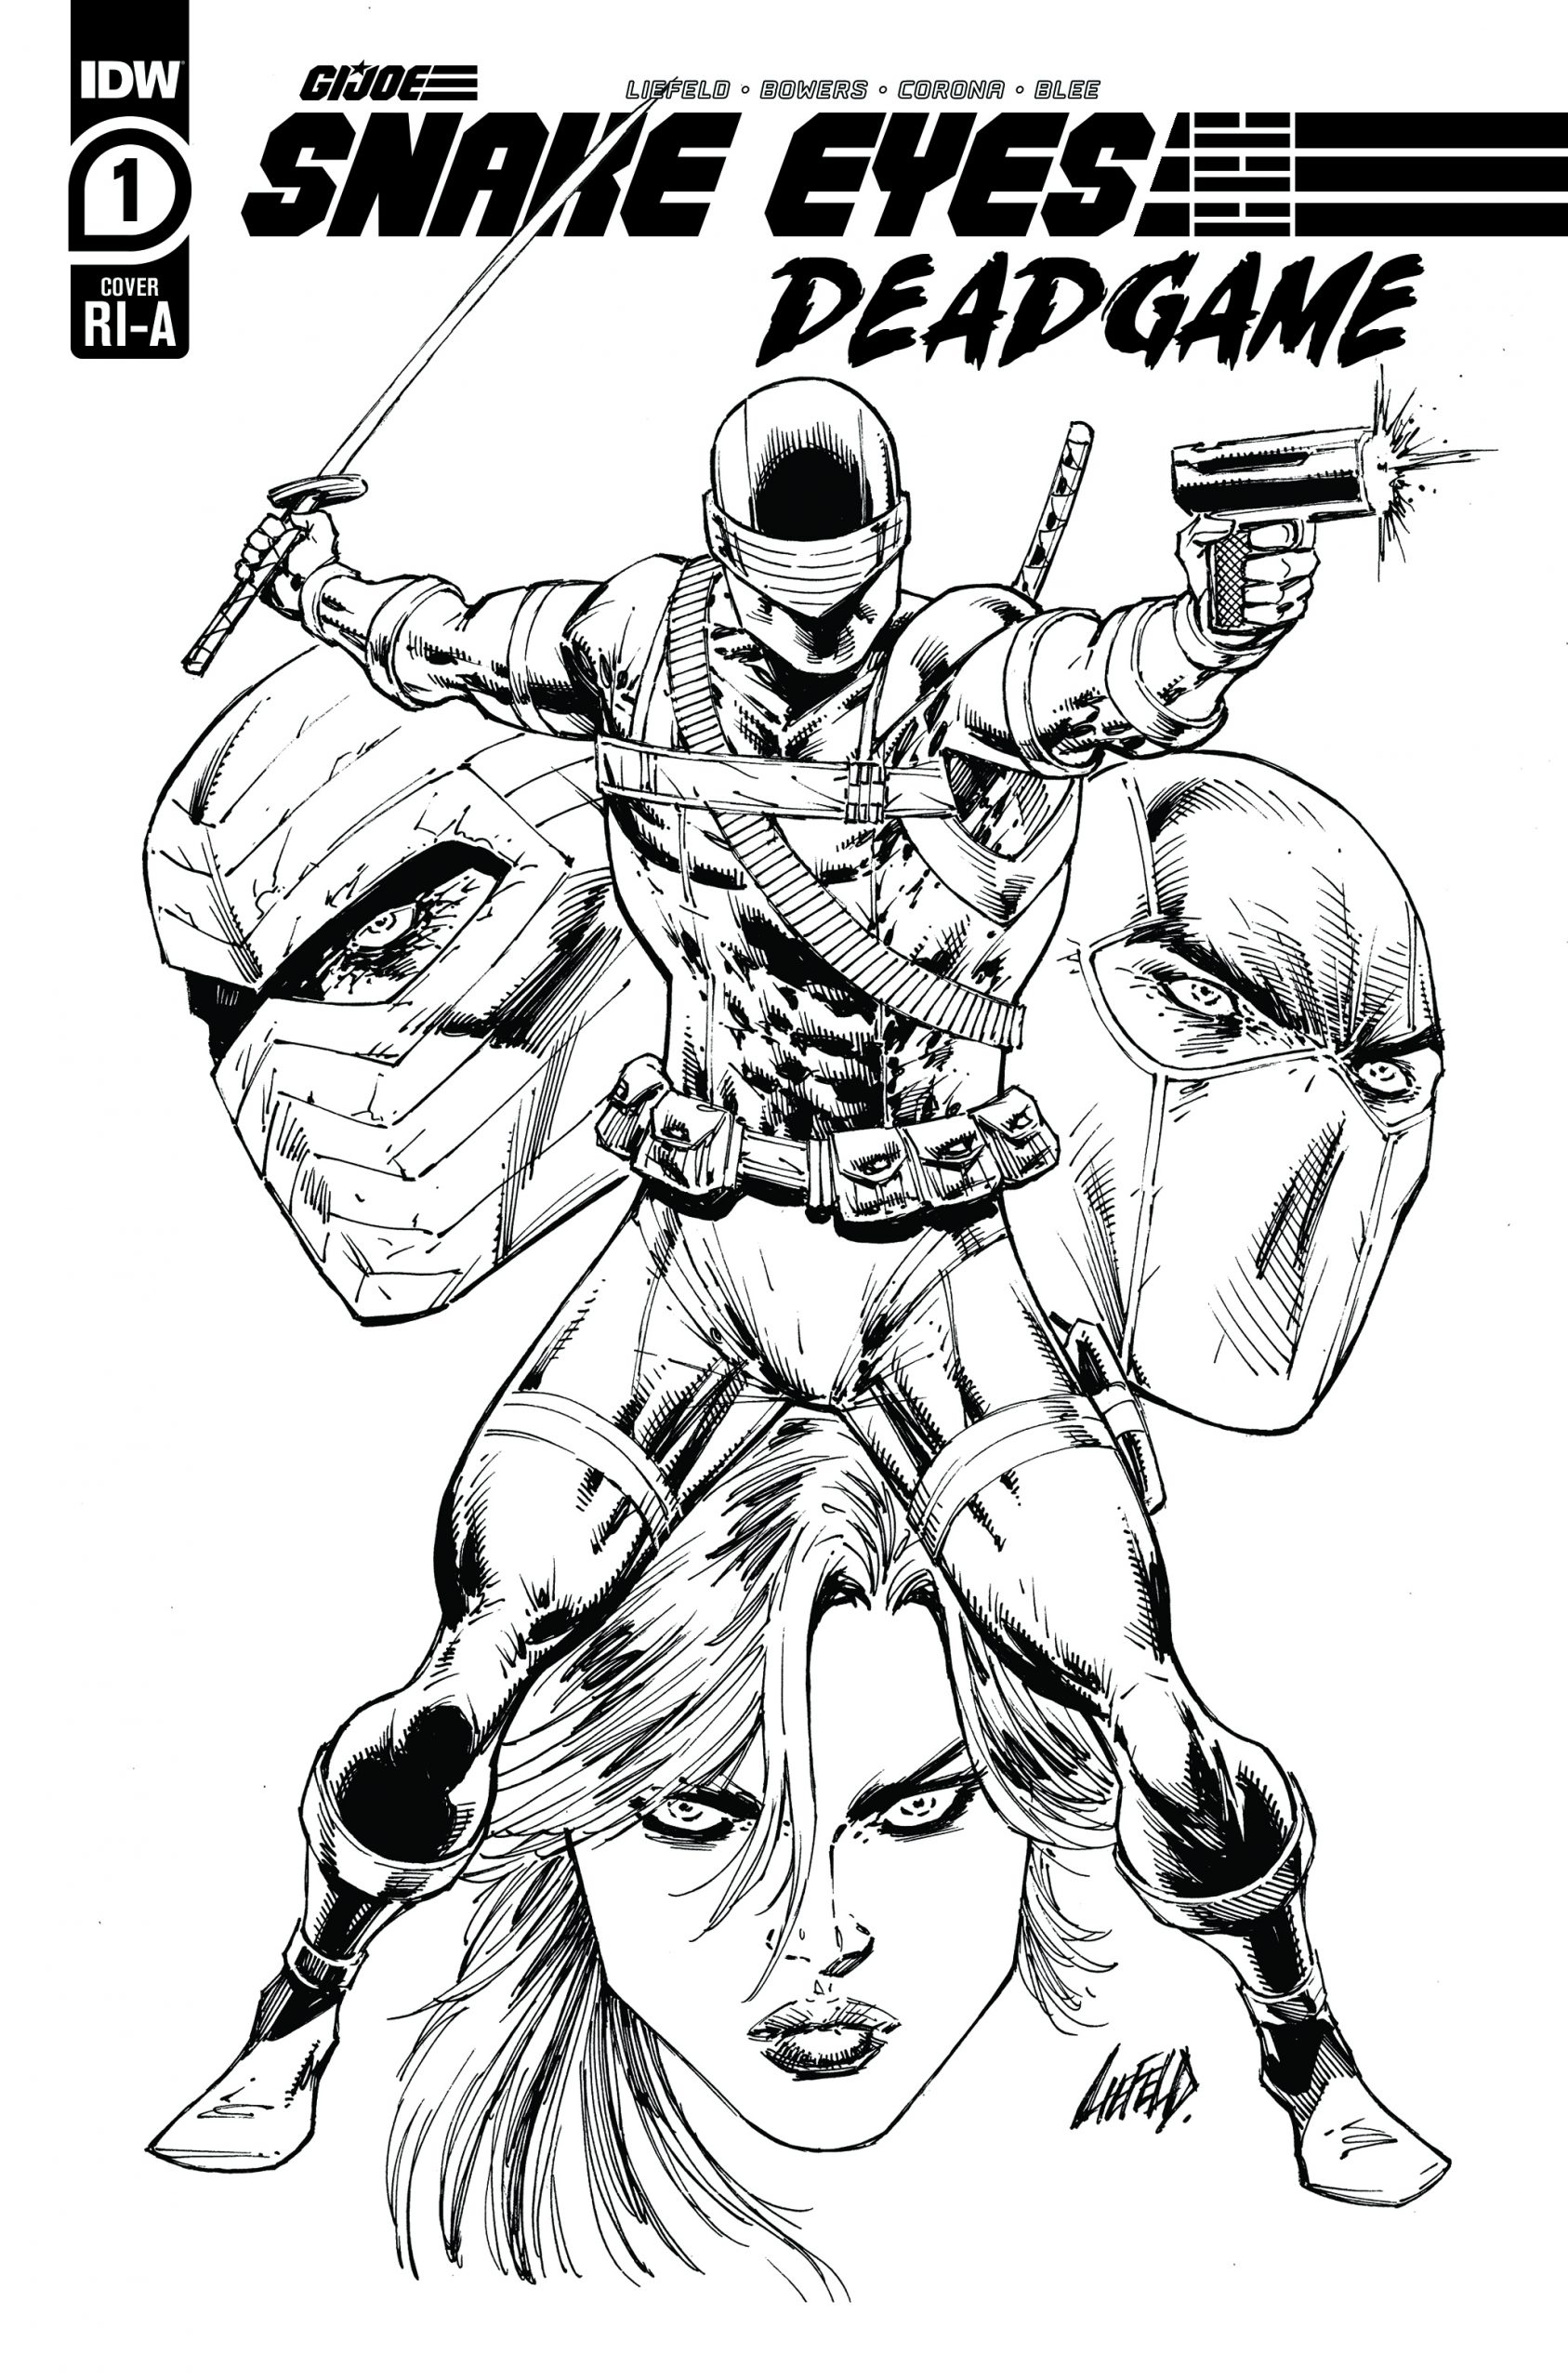 Snakes Eyes Deadgame #1 Cover RI-B by Rob Liefeld